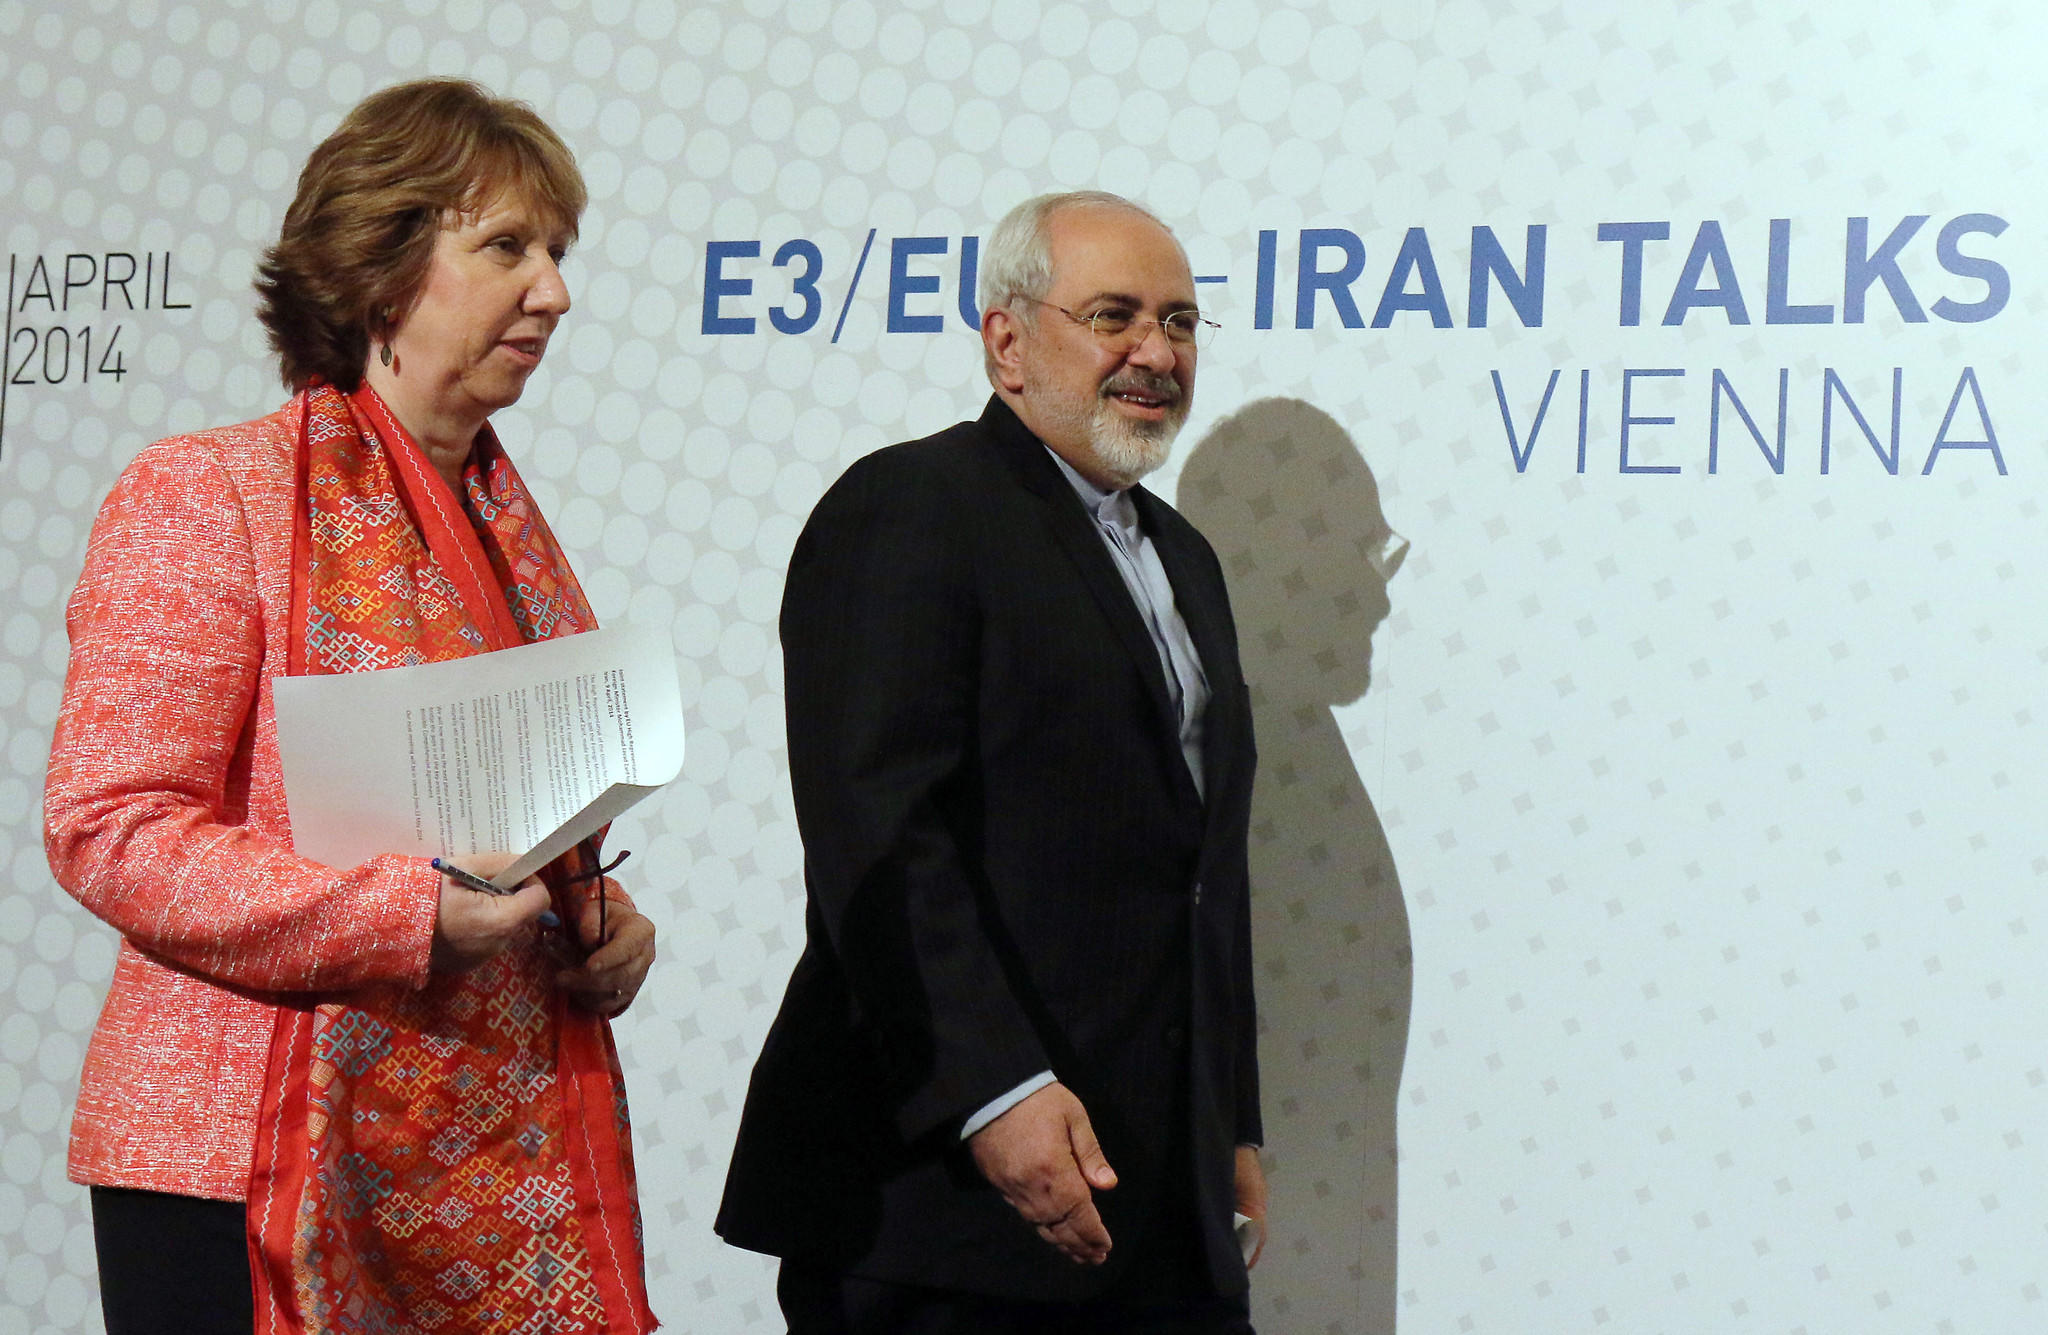 European Union foreign policy chief Catherine Ashton and Iranian Foreign Minister Mohammad Javad Zarif arrive to address the media after closed-door nuclear talks in Vienna this week.